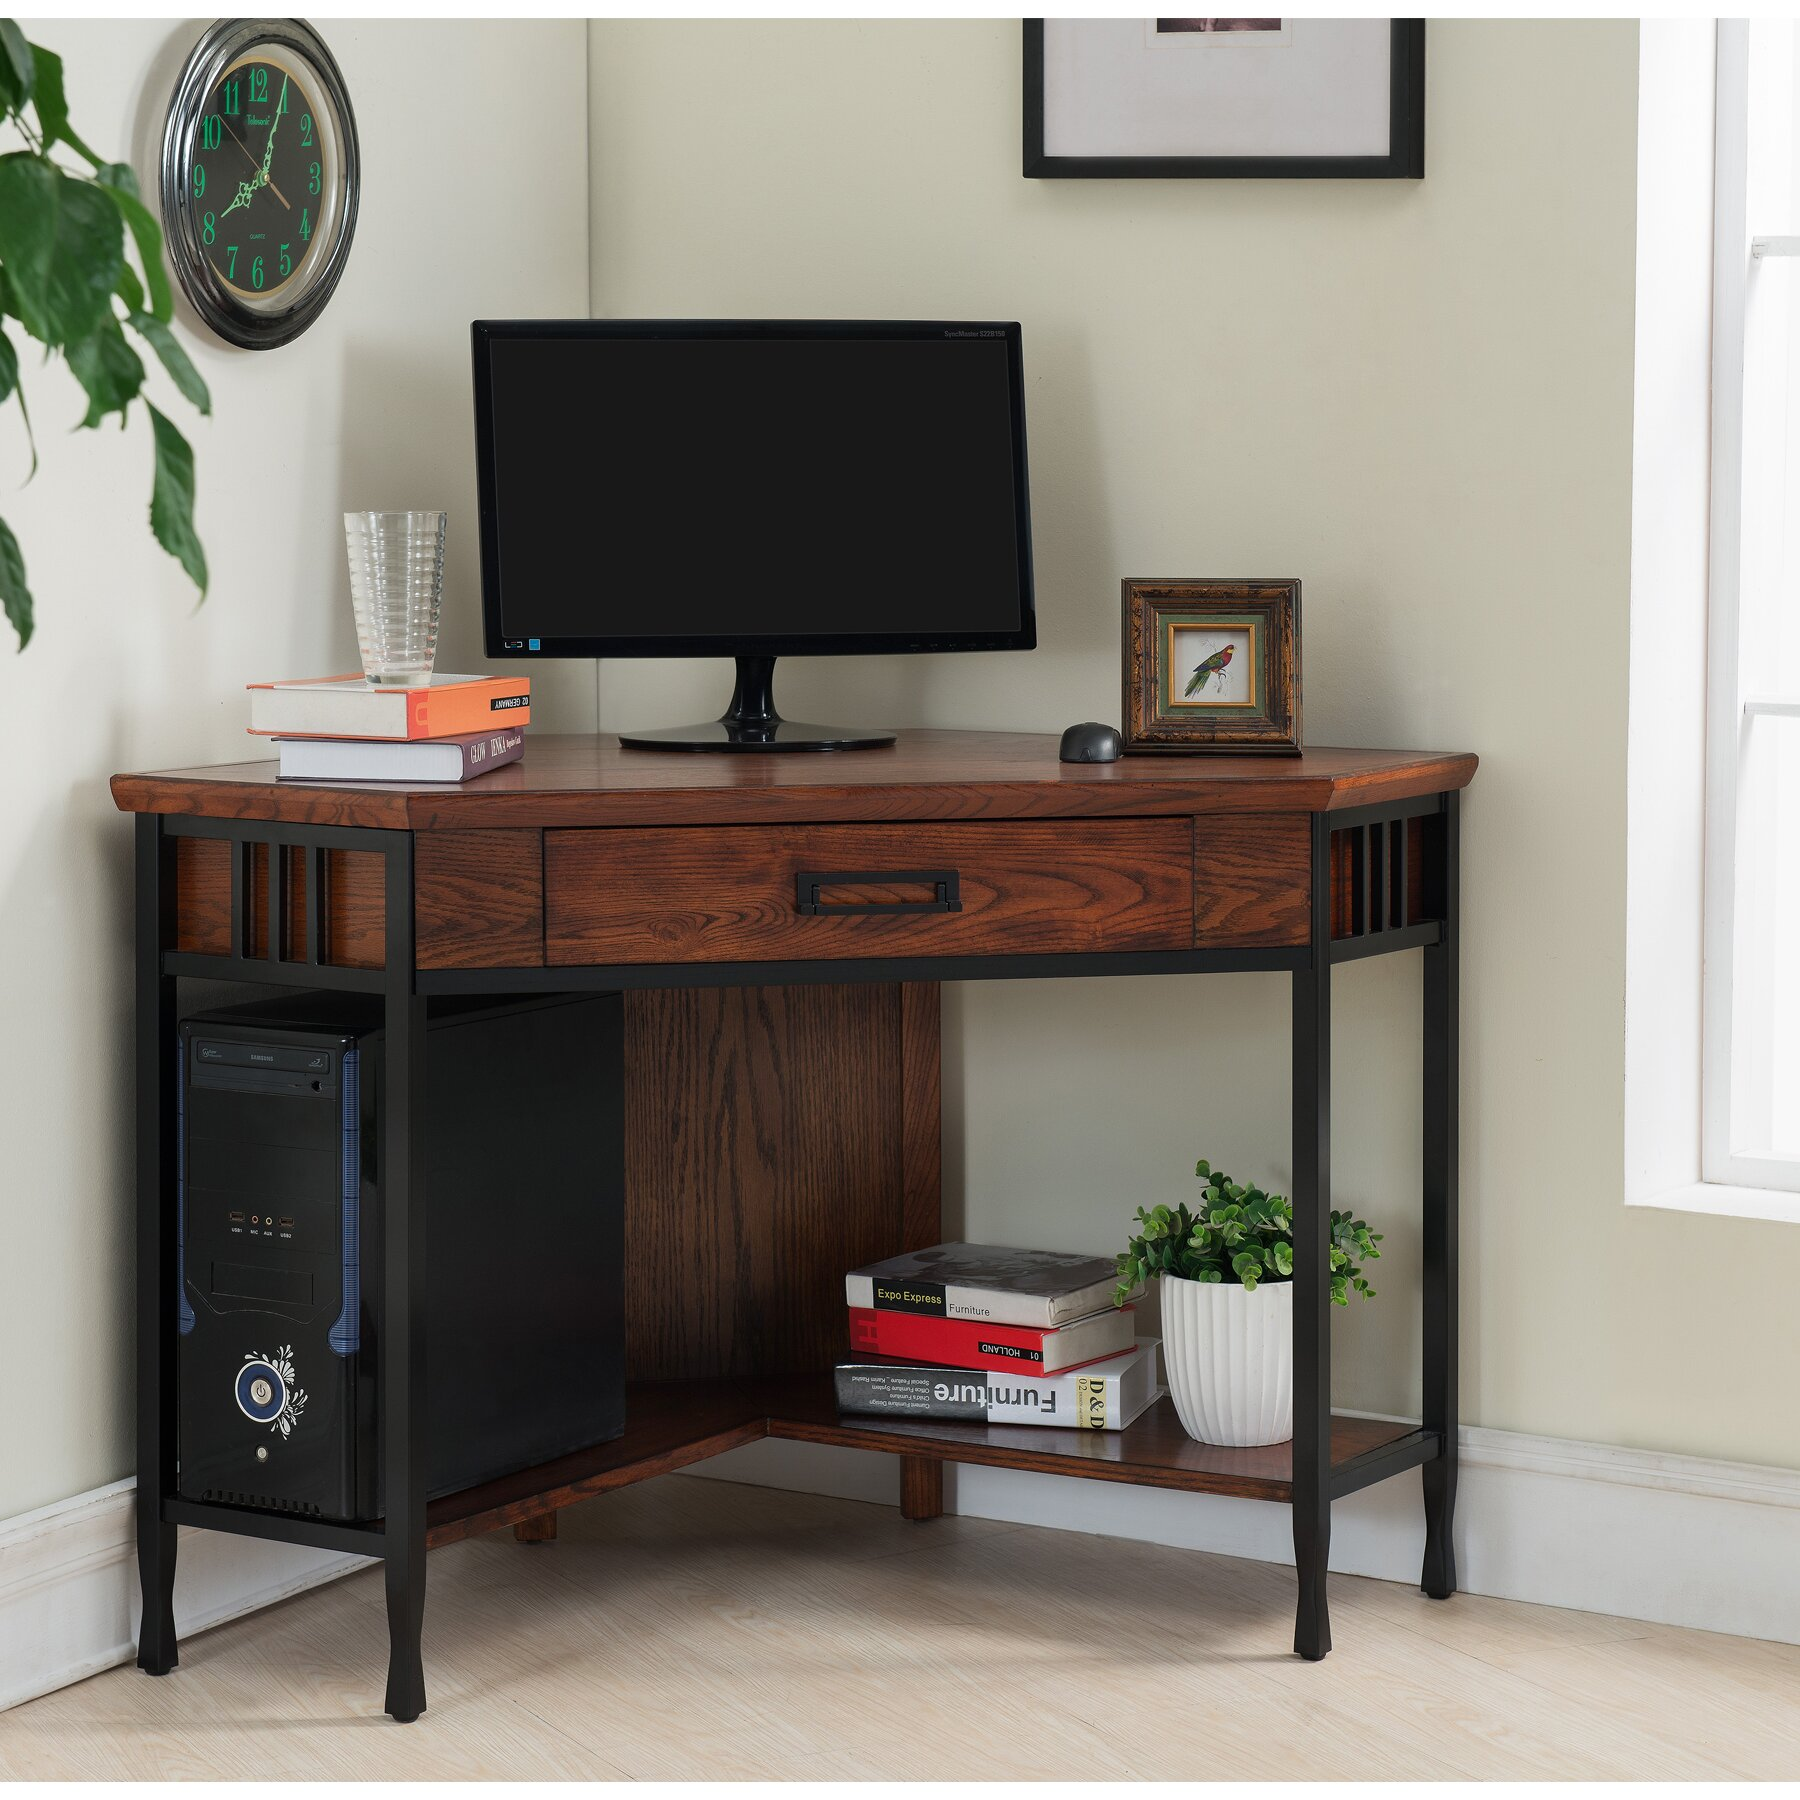 Leick ironcraft computer desk reviews wayfair for Furniture 2 day shipping